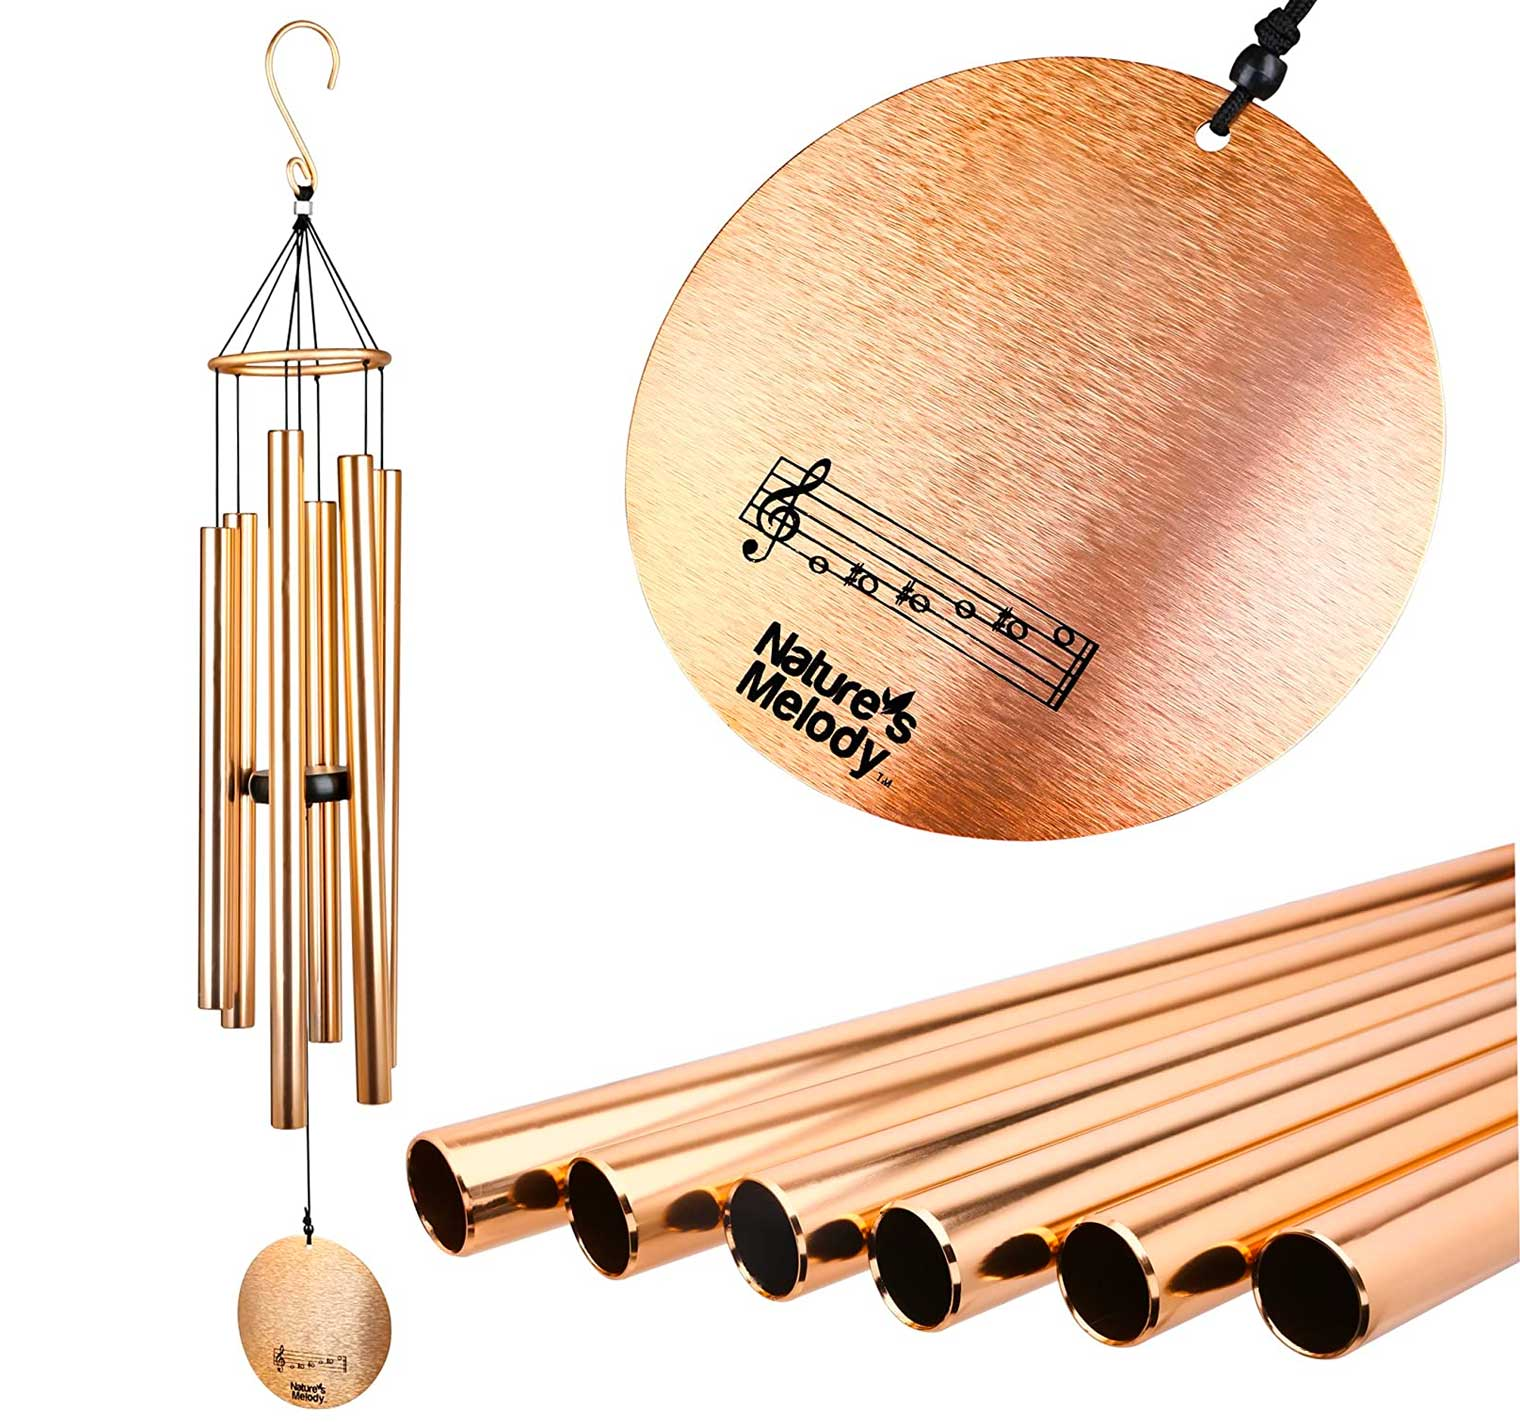 Nature's Melody Aureole Tunes Wind Chimes – Outdoor Windchime with 6 Tubes Tuned to E Pentatonic Scale, 100% Rustproof Aluminum, Powder Finish & S Hook Hanger for Sympathy, Memorial Gift or Zen Garden